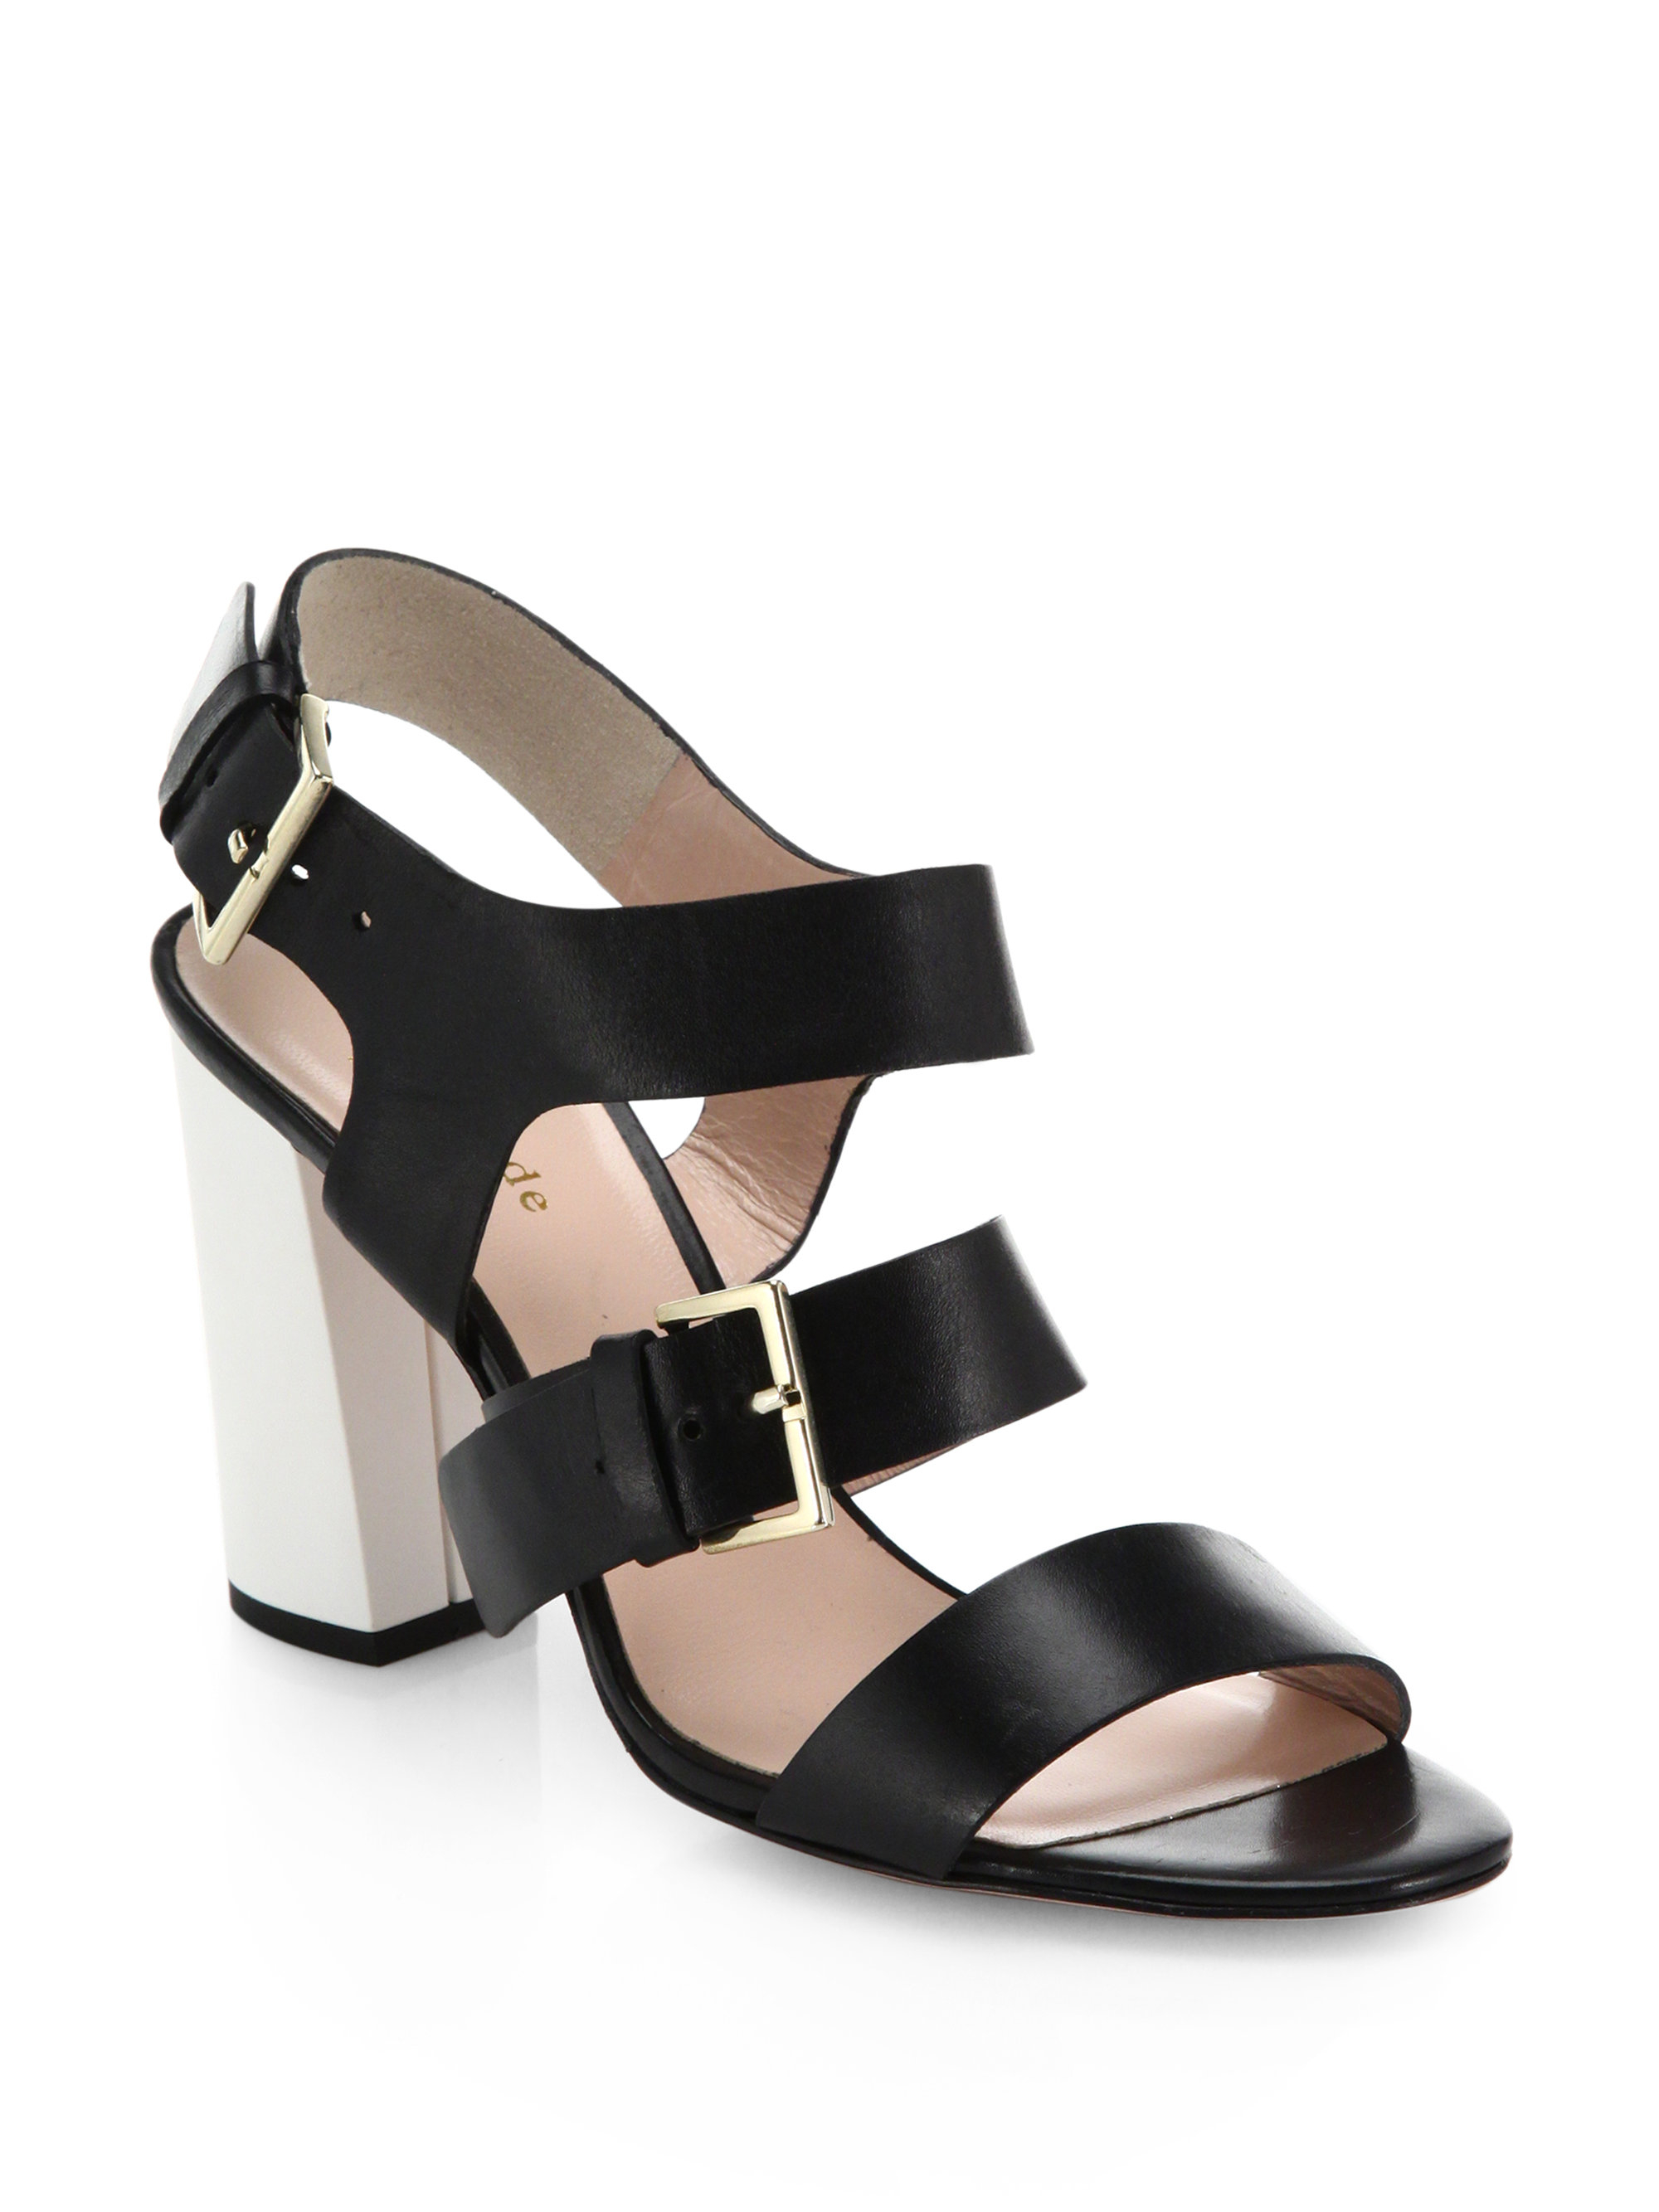 5c7a7912b26 Lyst - Kate Spade Ibarra Two-tone Block-heeled Sandals in Black